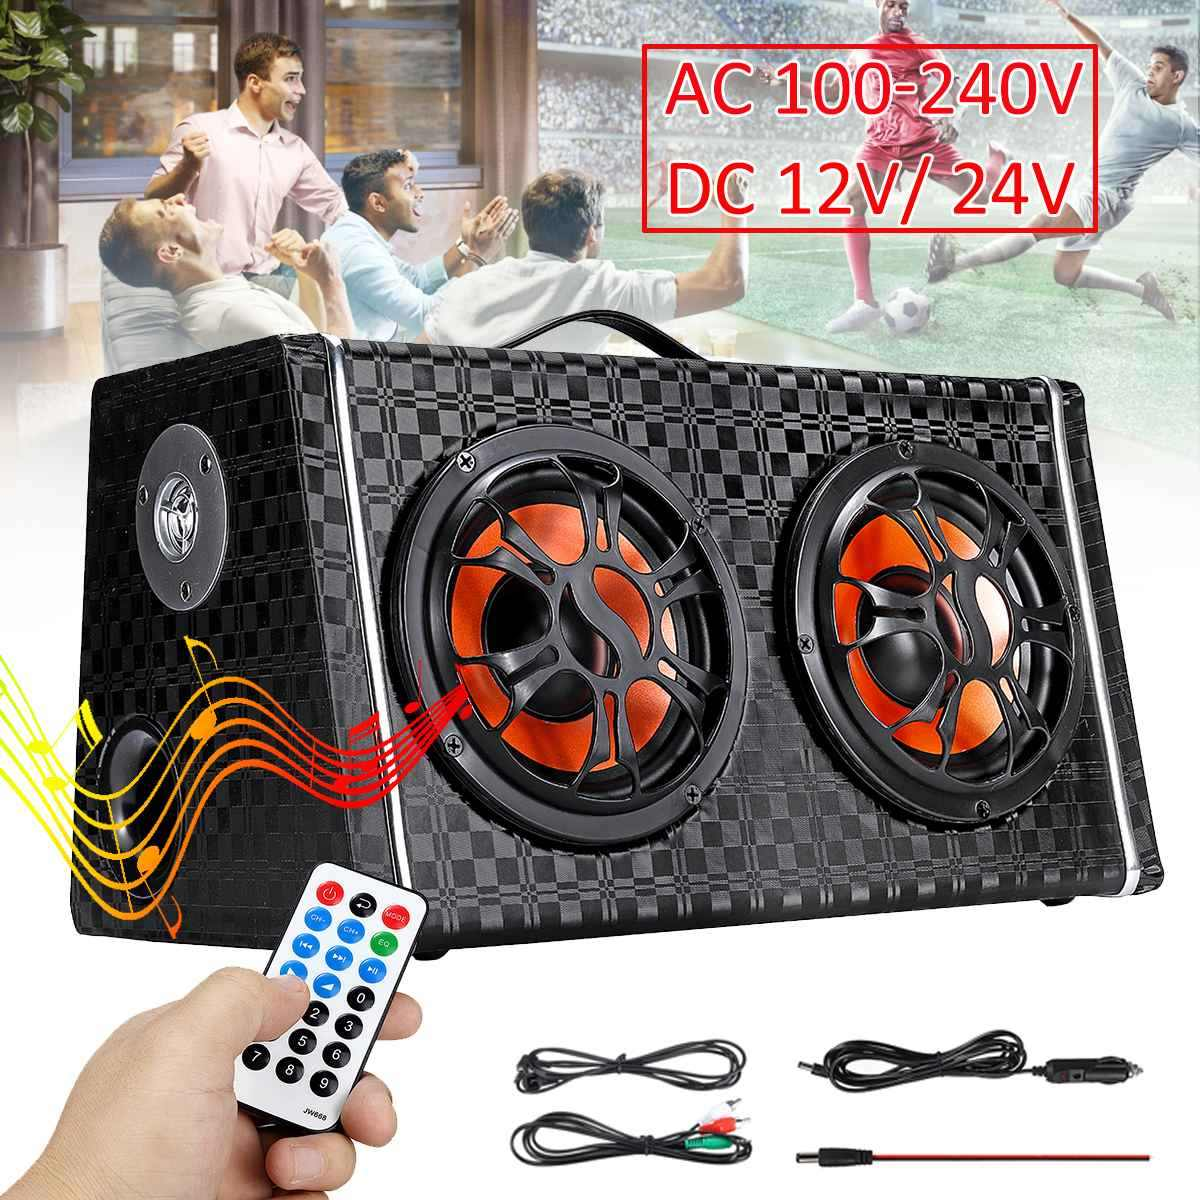 6 inch DC 12V/24V Wireless bluetooth Car Stereo Amplifier Subwoofer Speaker  AC 100-240V Home Audio FM Radio Player Speakers